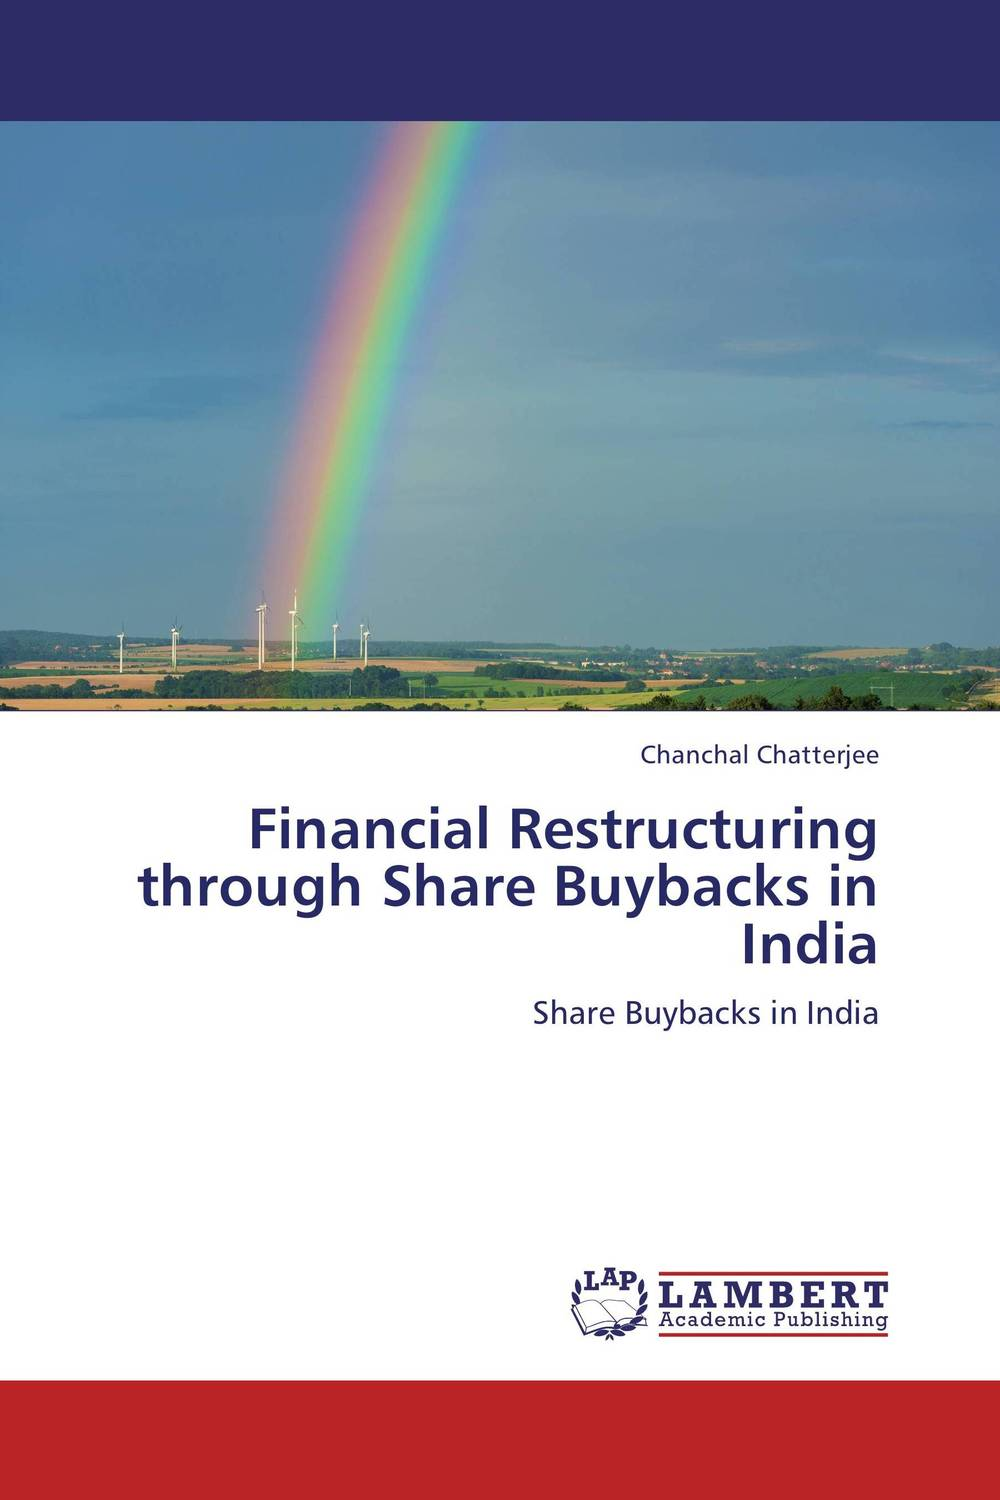 Financial Restructuring through Share Buybacks in India customer orientation as a basis for corporate growth